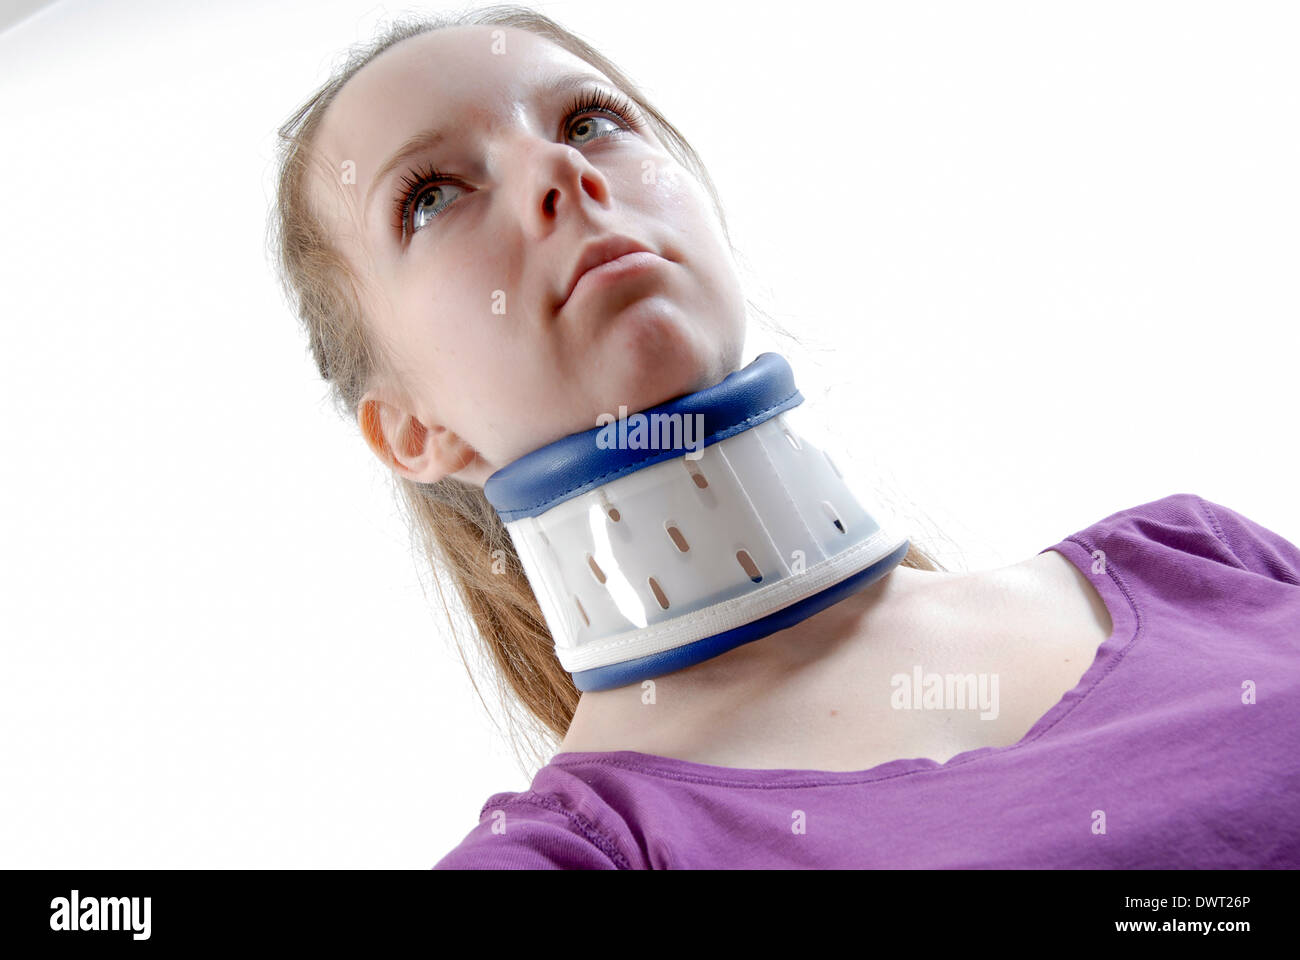 Supportive collar - Stock Image